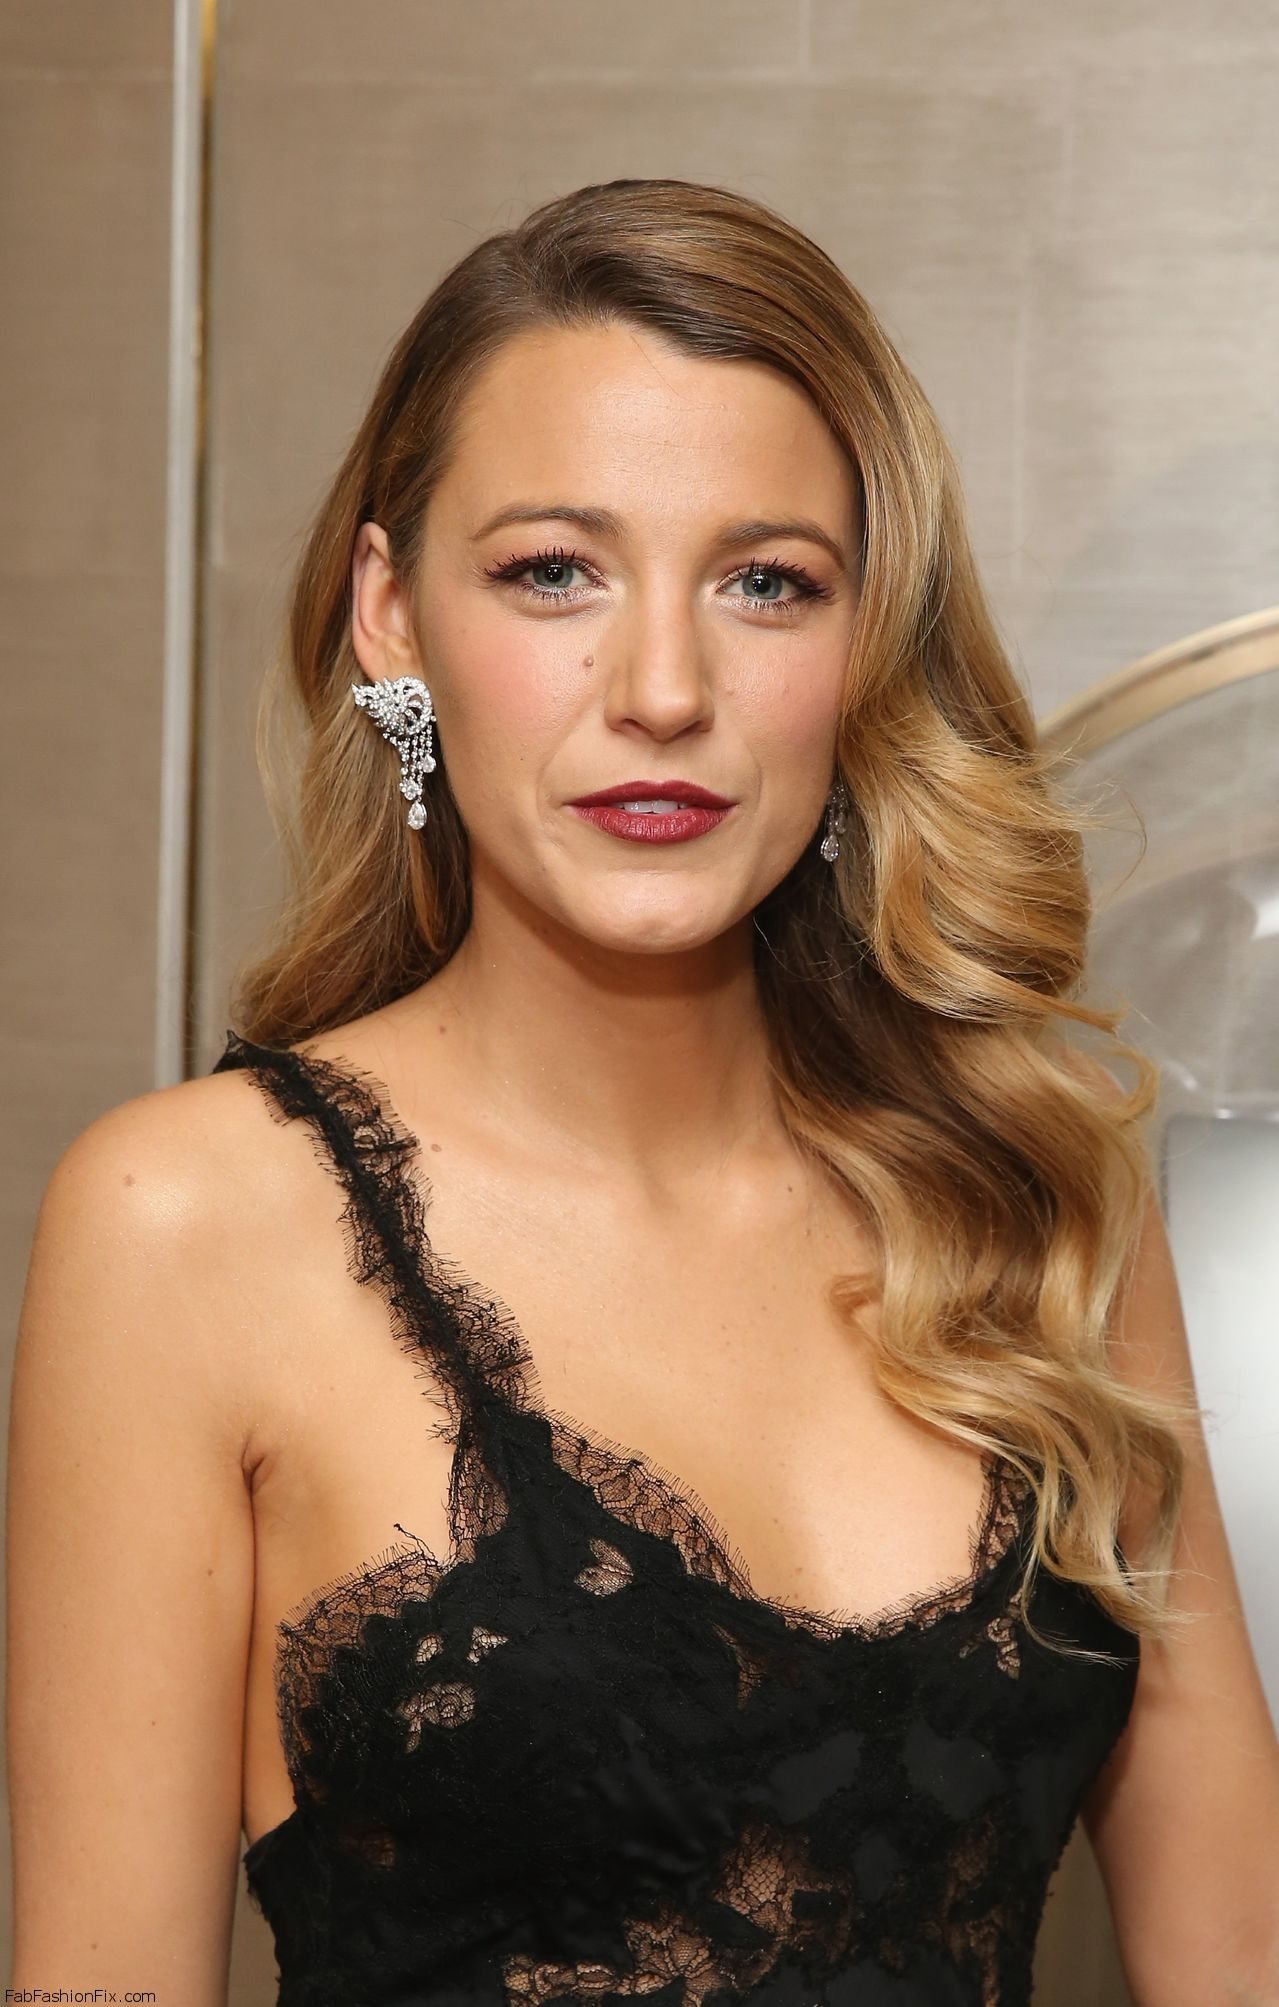 Blake_Lively_Fifth_Avenue_Unveiling121013_tcc